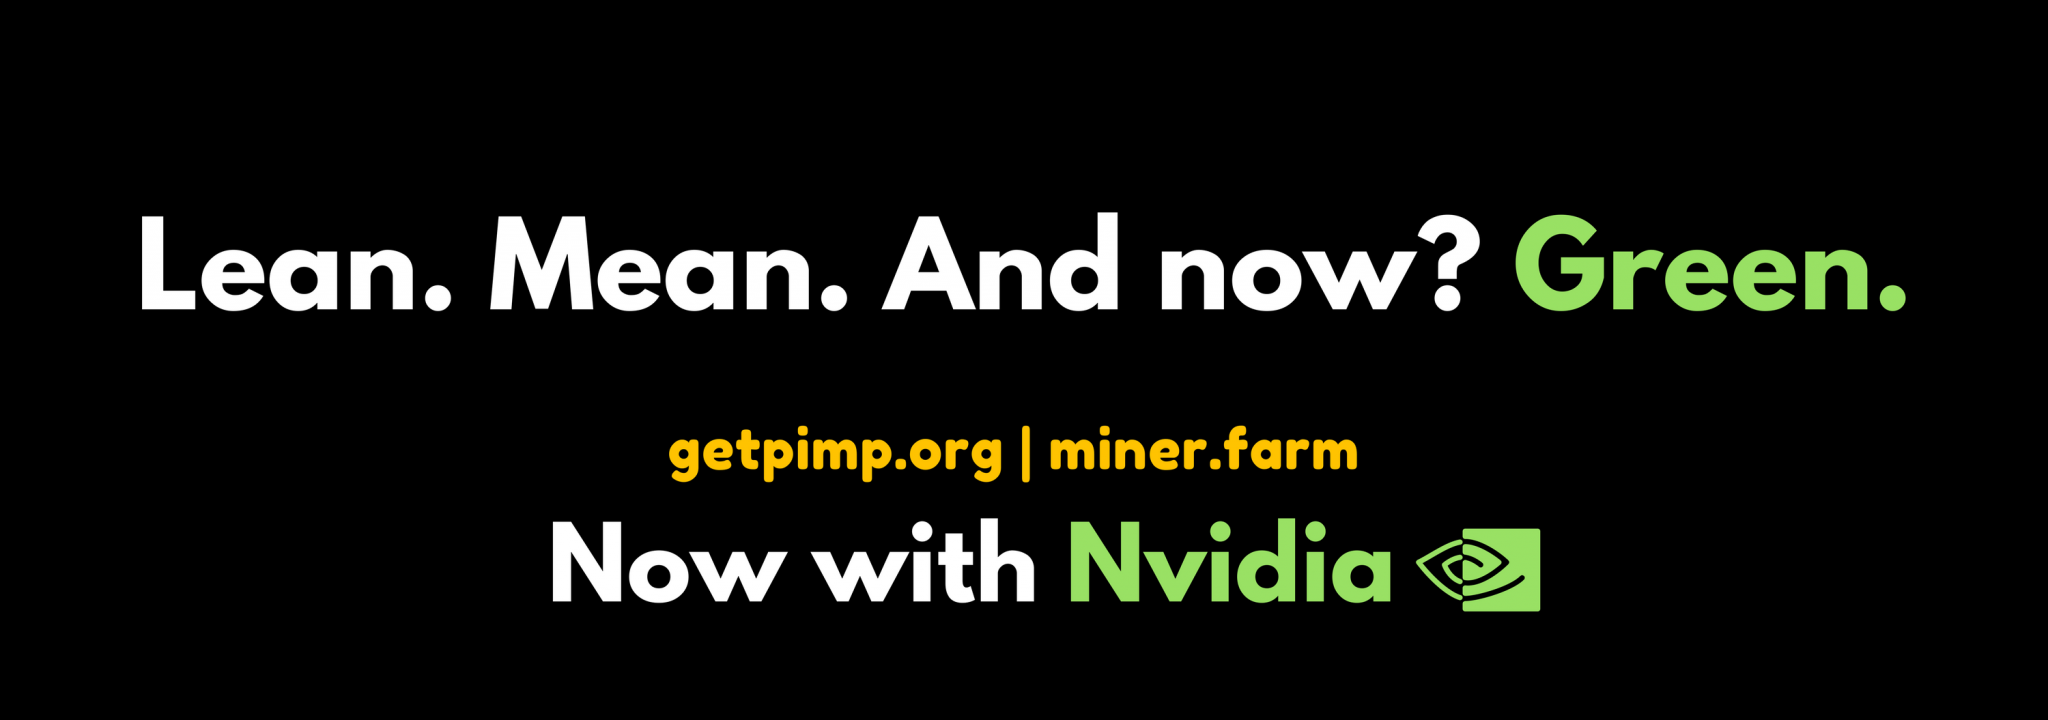 nvidia-banner.png